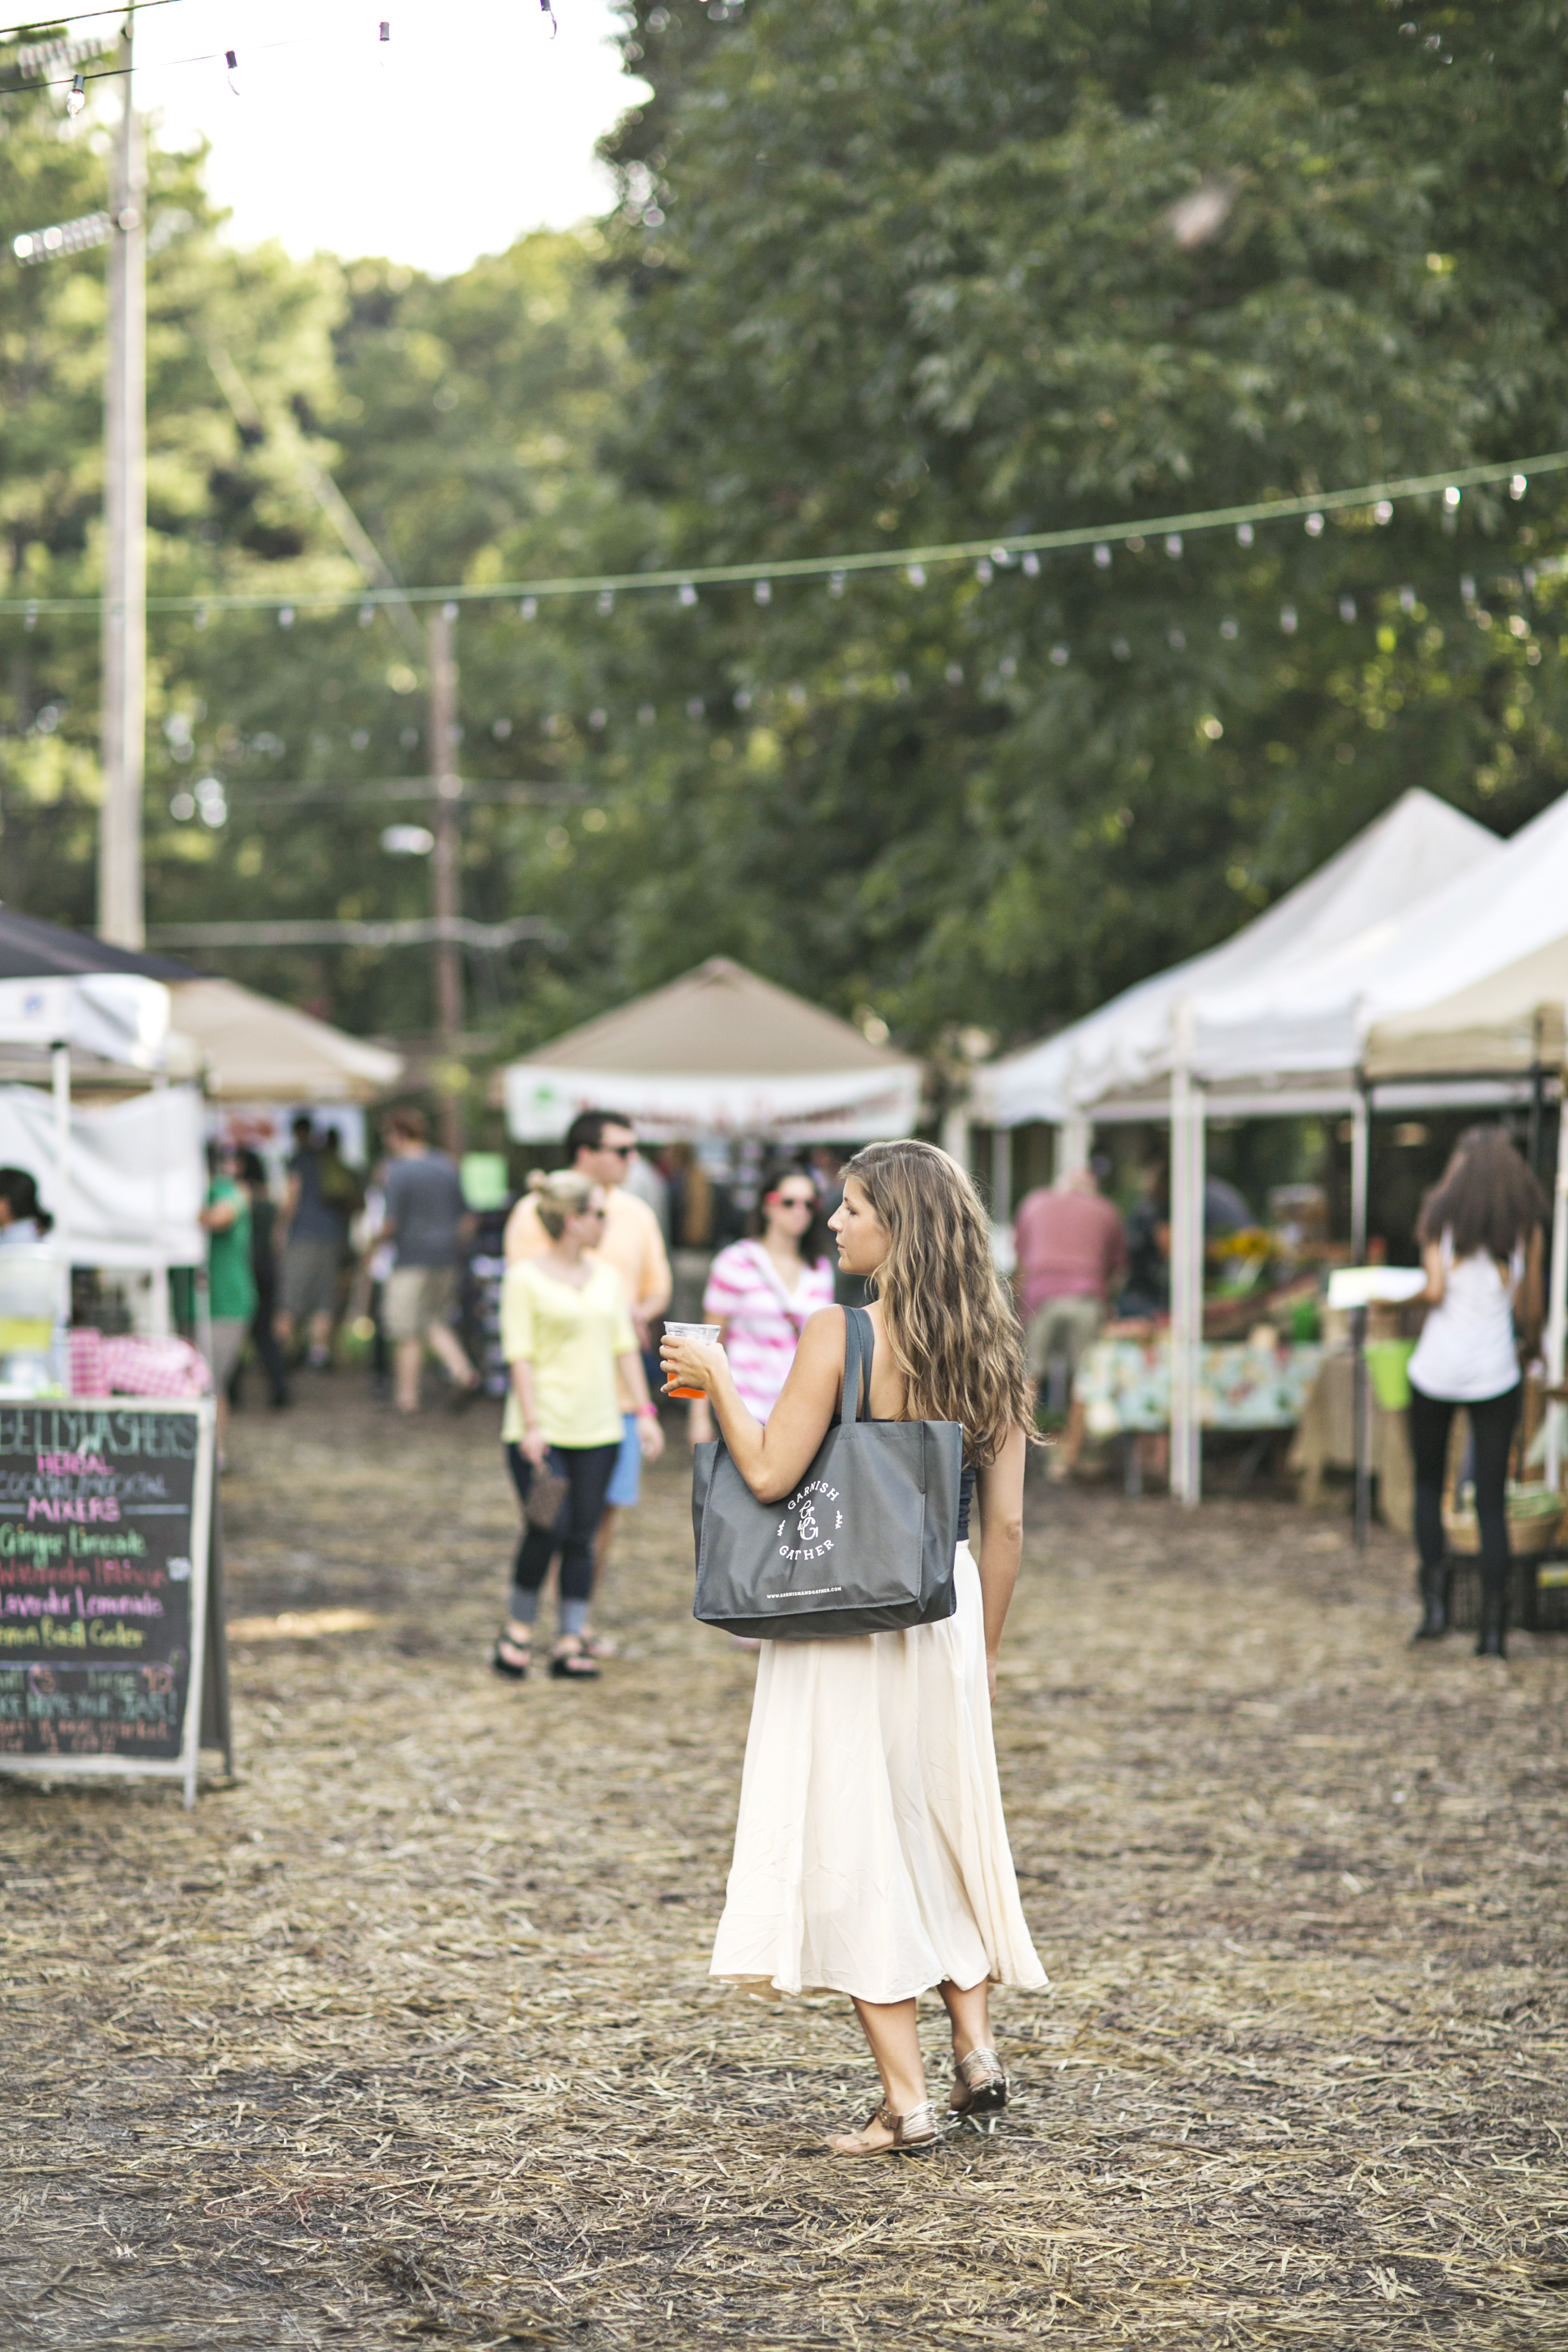 5 Tips for Shopping at a Farmers Market